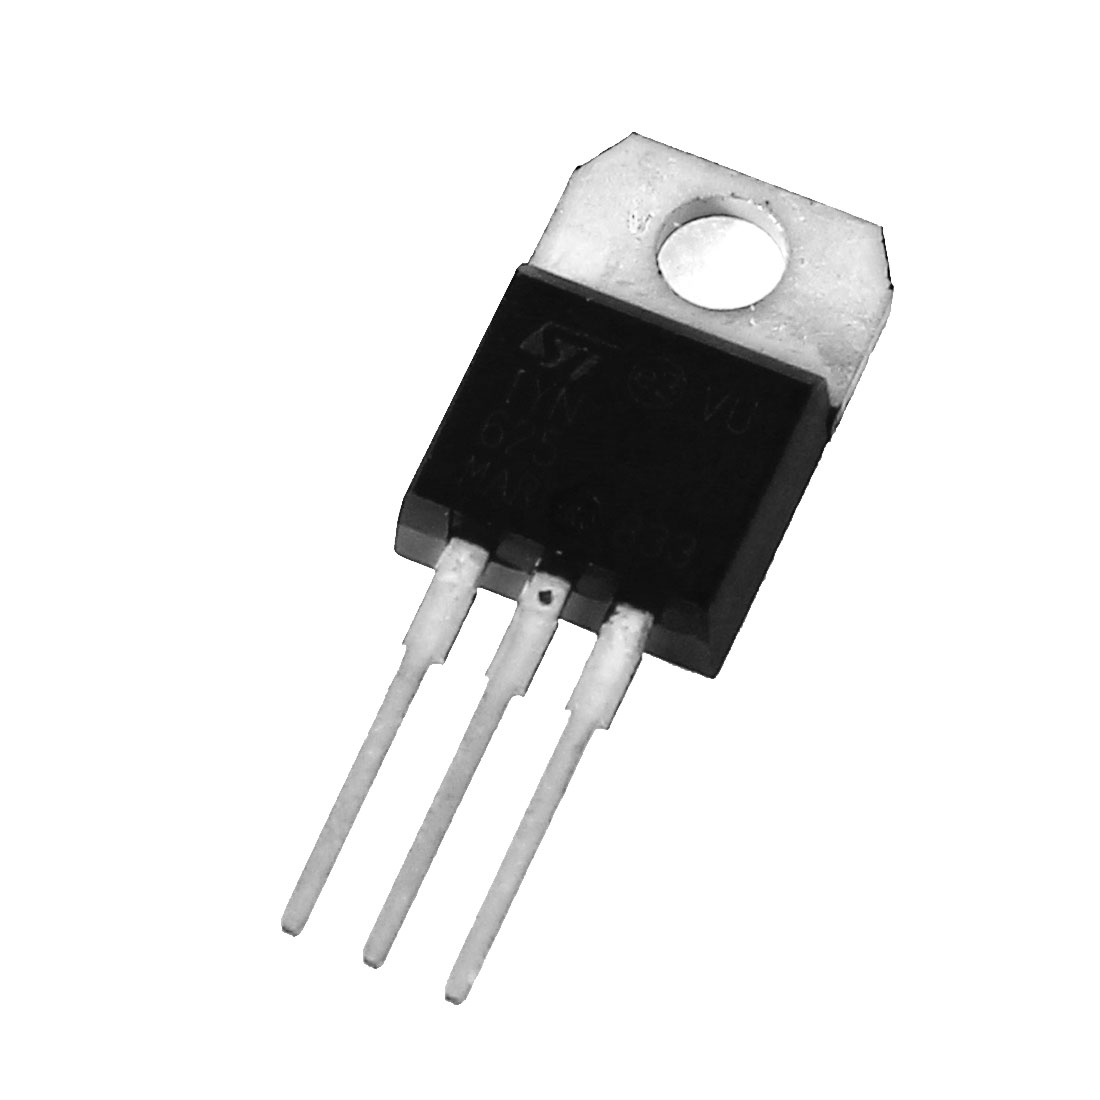 TYN625 600V 25A 3 Pin Terminals TO-220B Package Complementary Semiconductor NPN Silicon Transistor